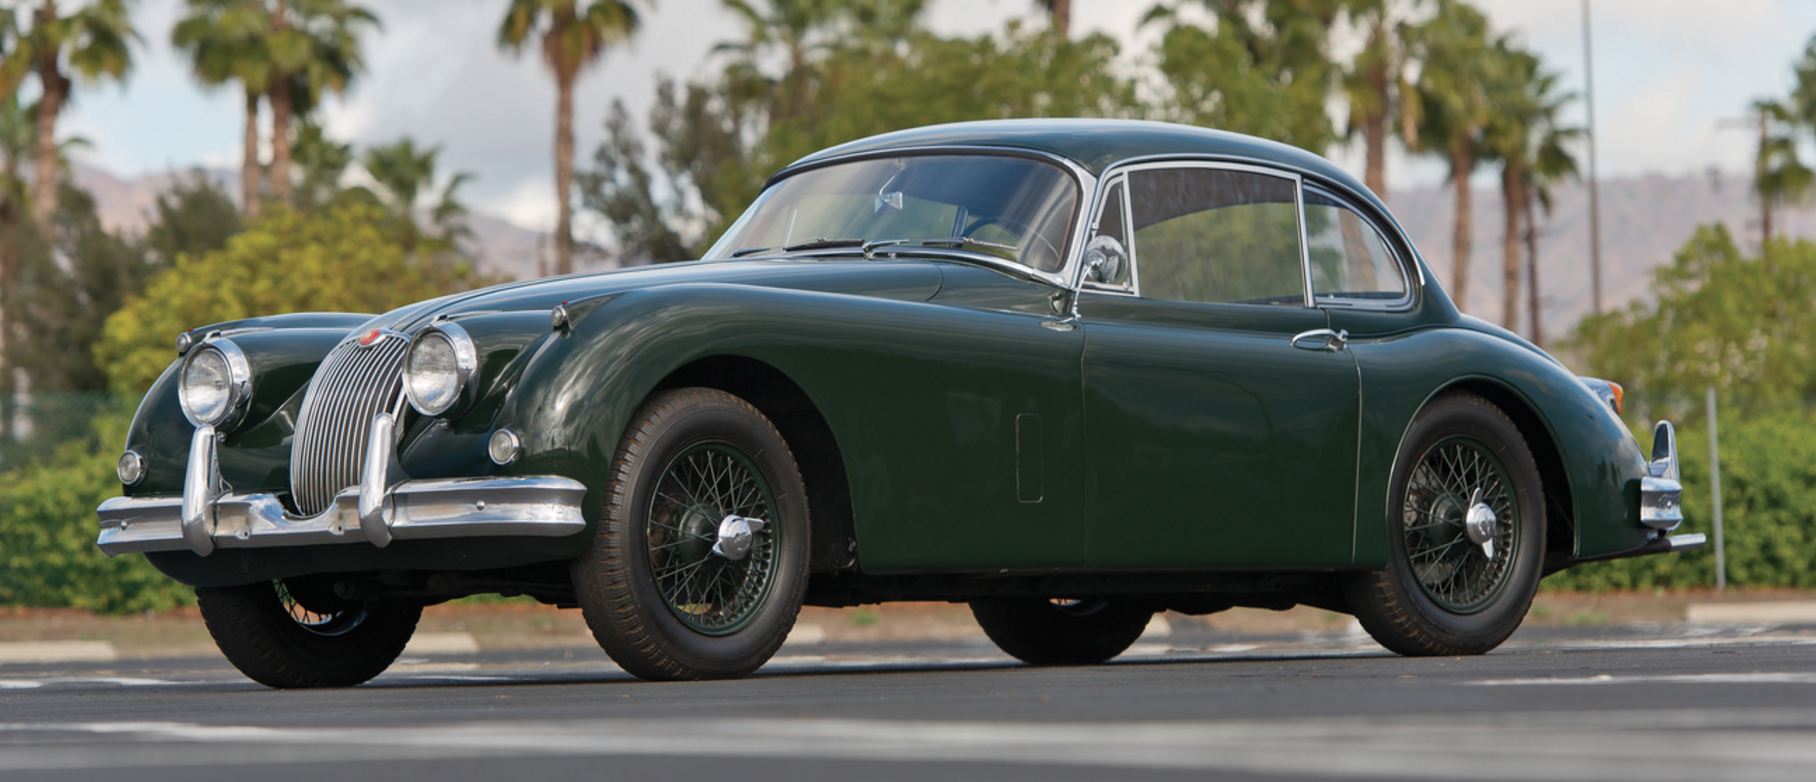 Jaguar Xk150 3 4 Hardtop Coupe Supercars Net